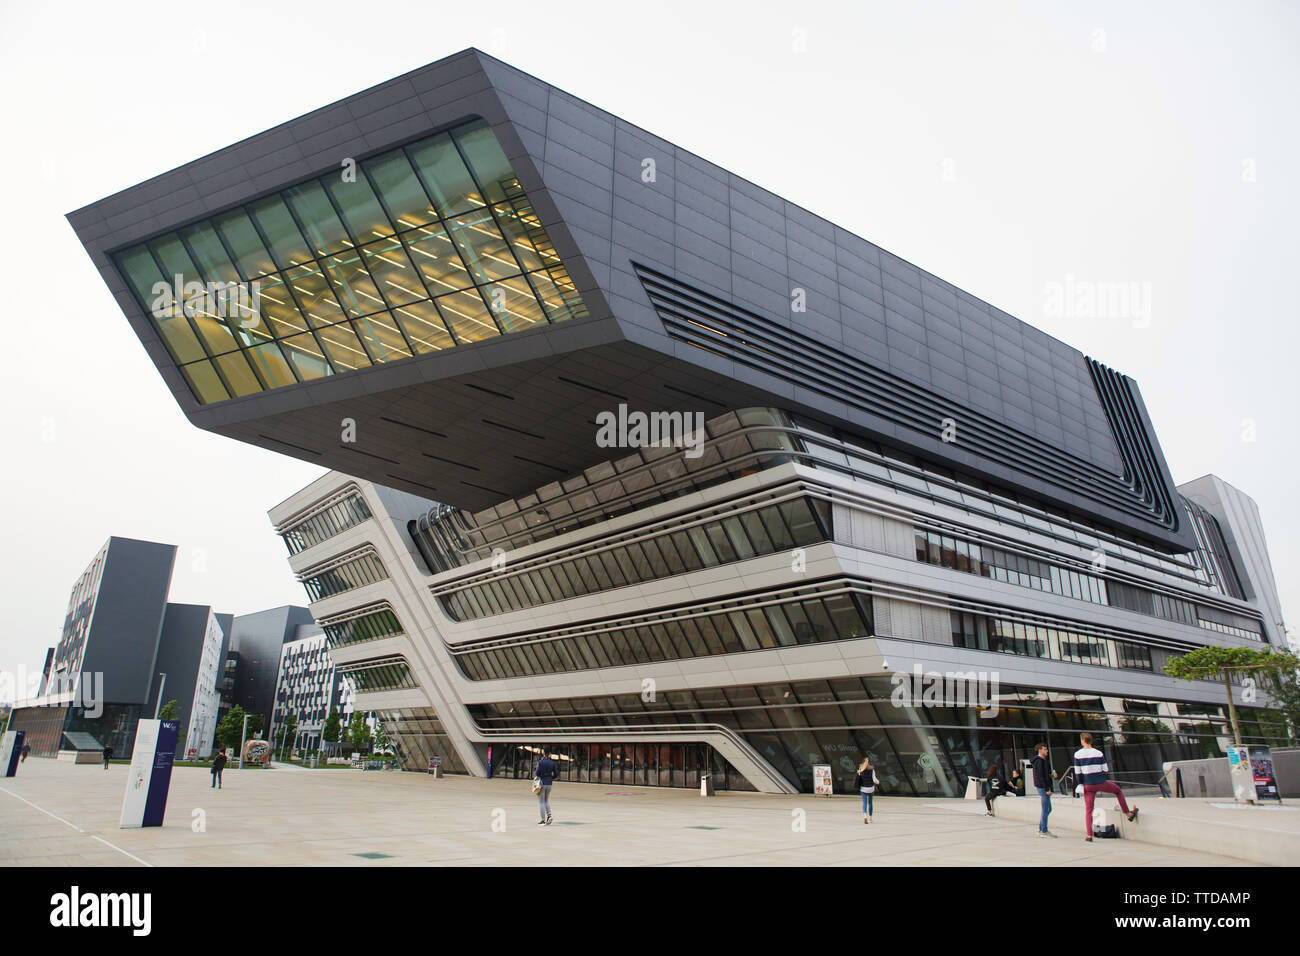 Library and Learning Centre of the Vienna University of Economics and Business (Wirtschaftsuniversität Wien) designed by the Zaha Hadid Architects (2013) in Vienna, Austria. Stock Photo